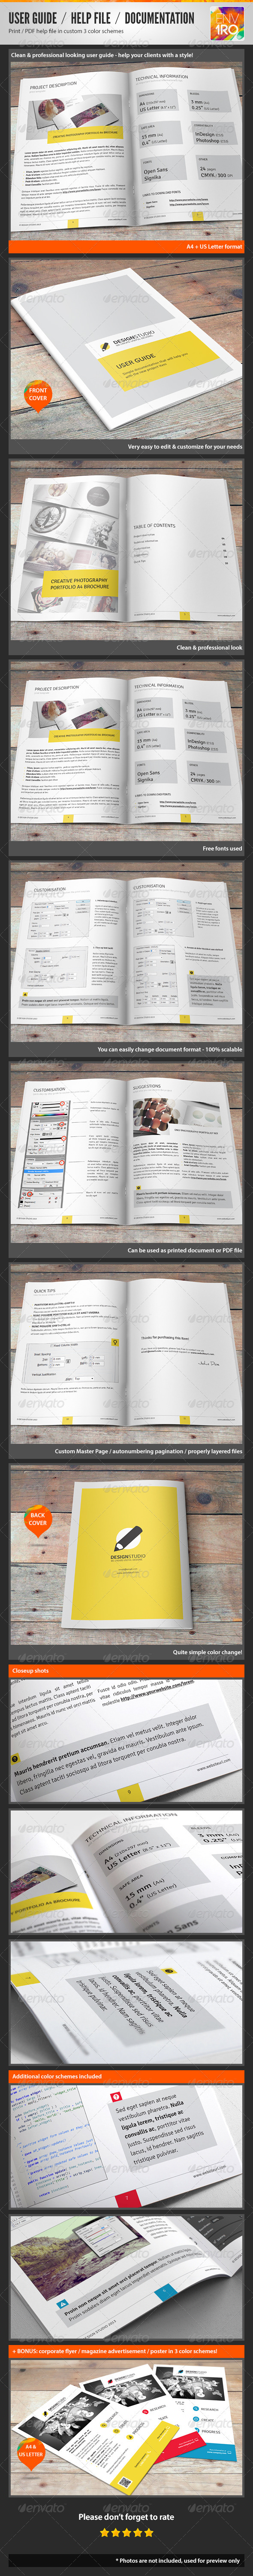 GraphicRiver Help File Illustrated Documentation User Guide 3792287